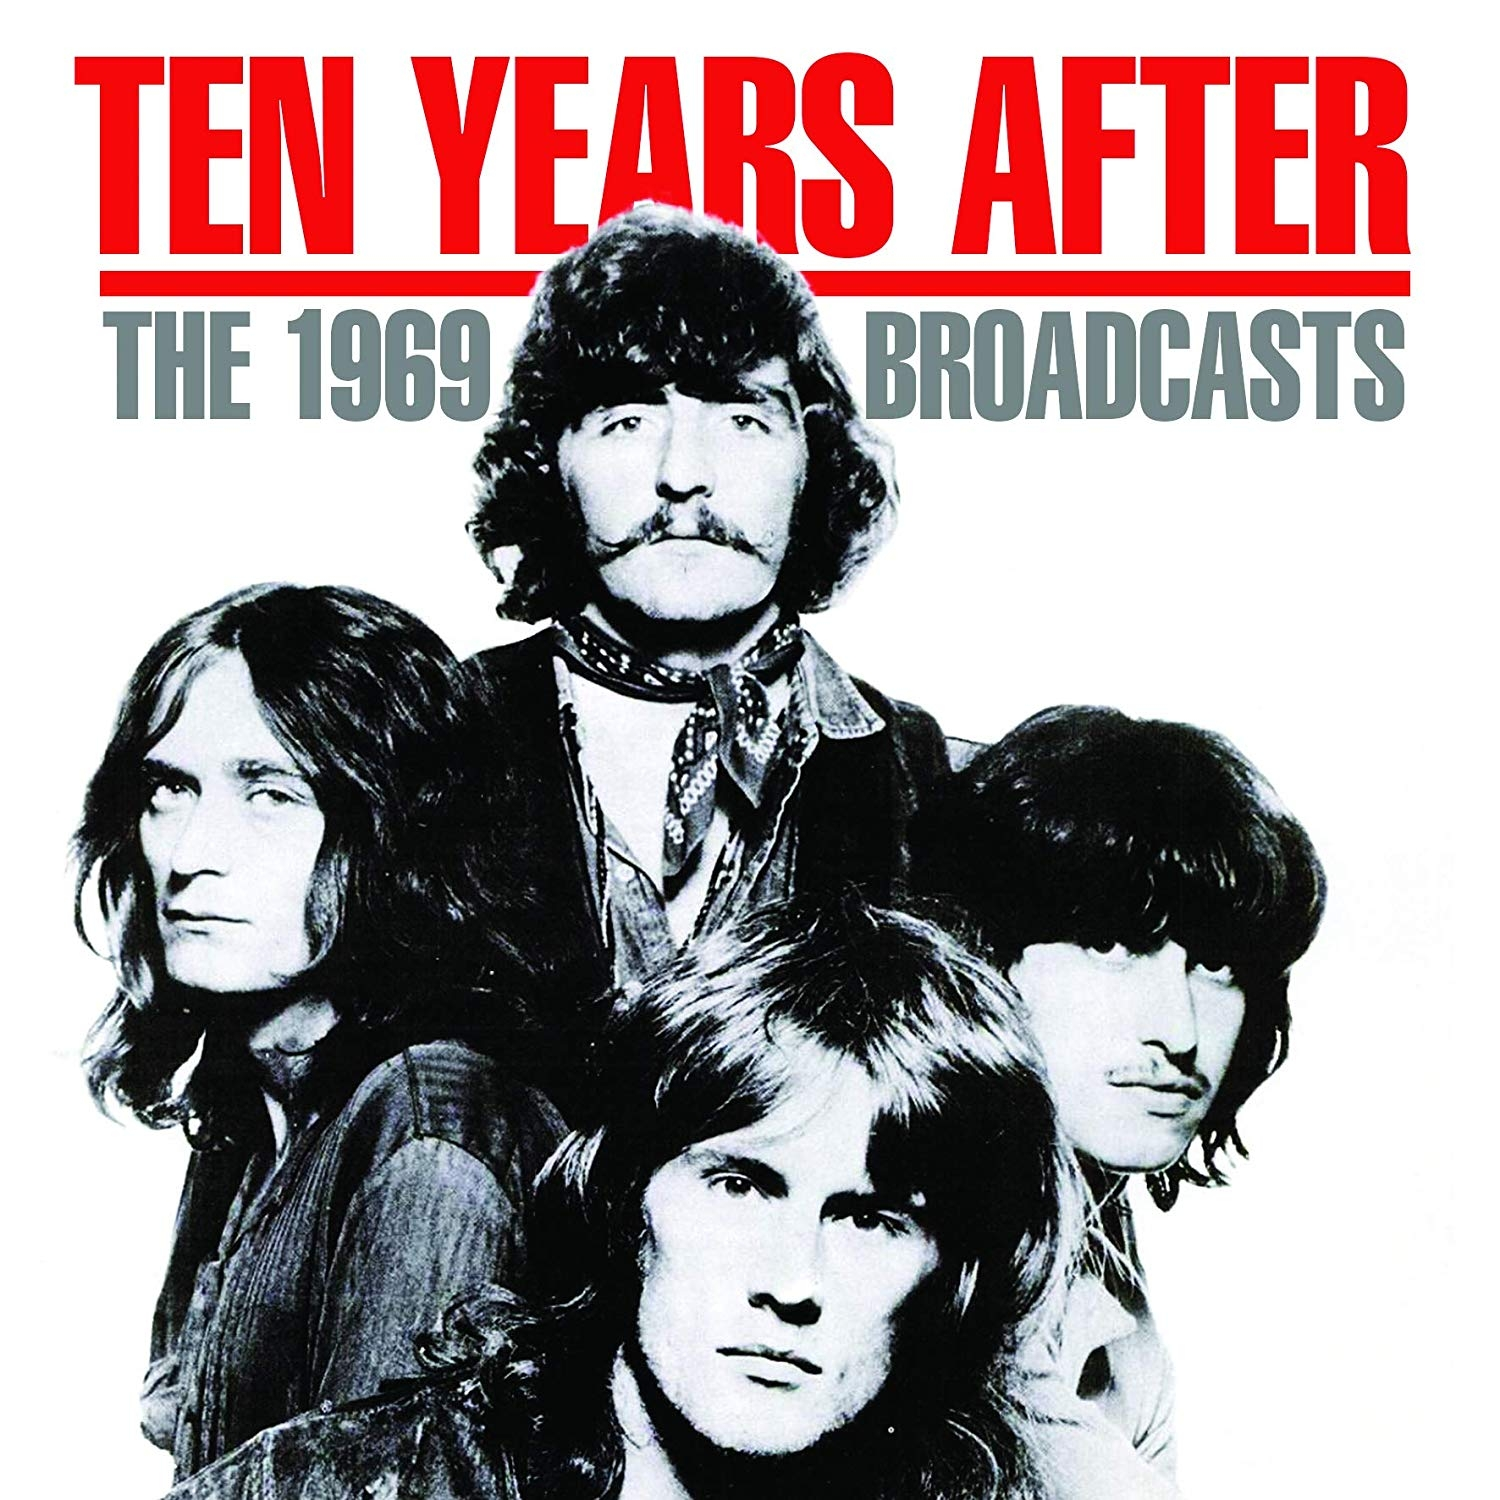 The 1969 Broadcasts